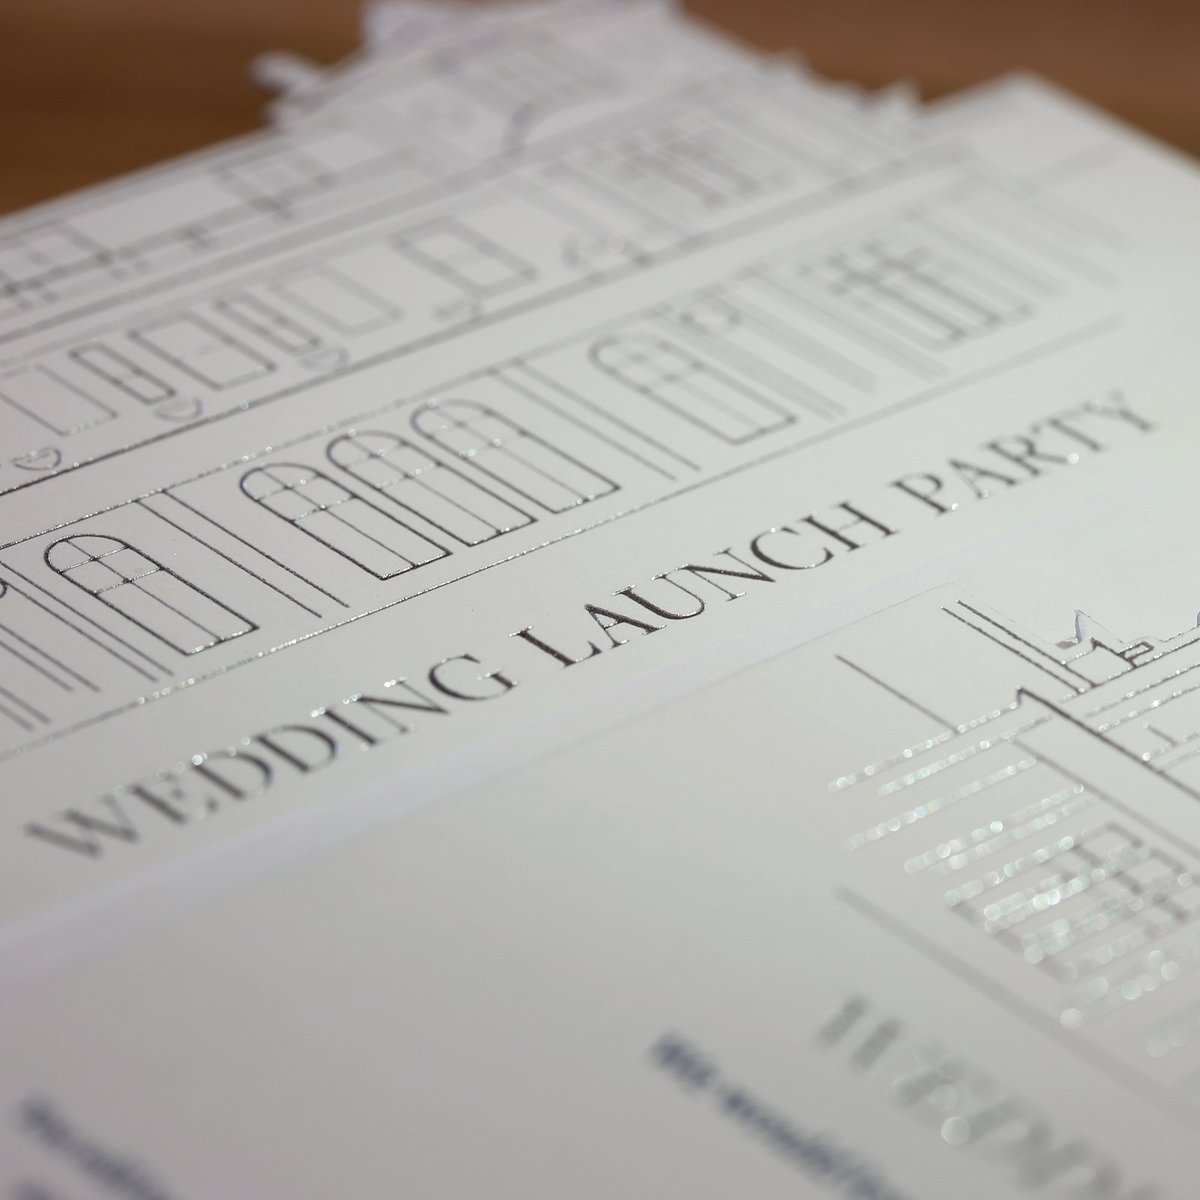 Sneak peak of some of our latest work for @downhall01. Bespoke, die-cut, foil blocked and letterpressed Wedding launch party invites, printed by Royal Warrant holders @BarnardWestwood  #Design #GraphicDesign #Print #Printing #Letterpress #Hotel #Hertfordshire #DownHall #Luxury https://t.co/7BEByqDY1L